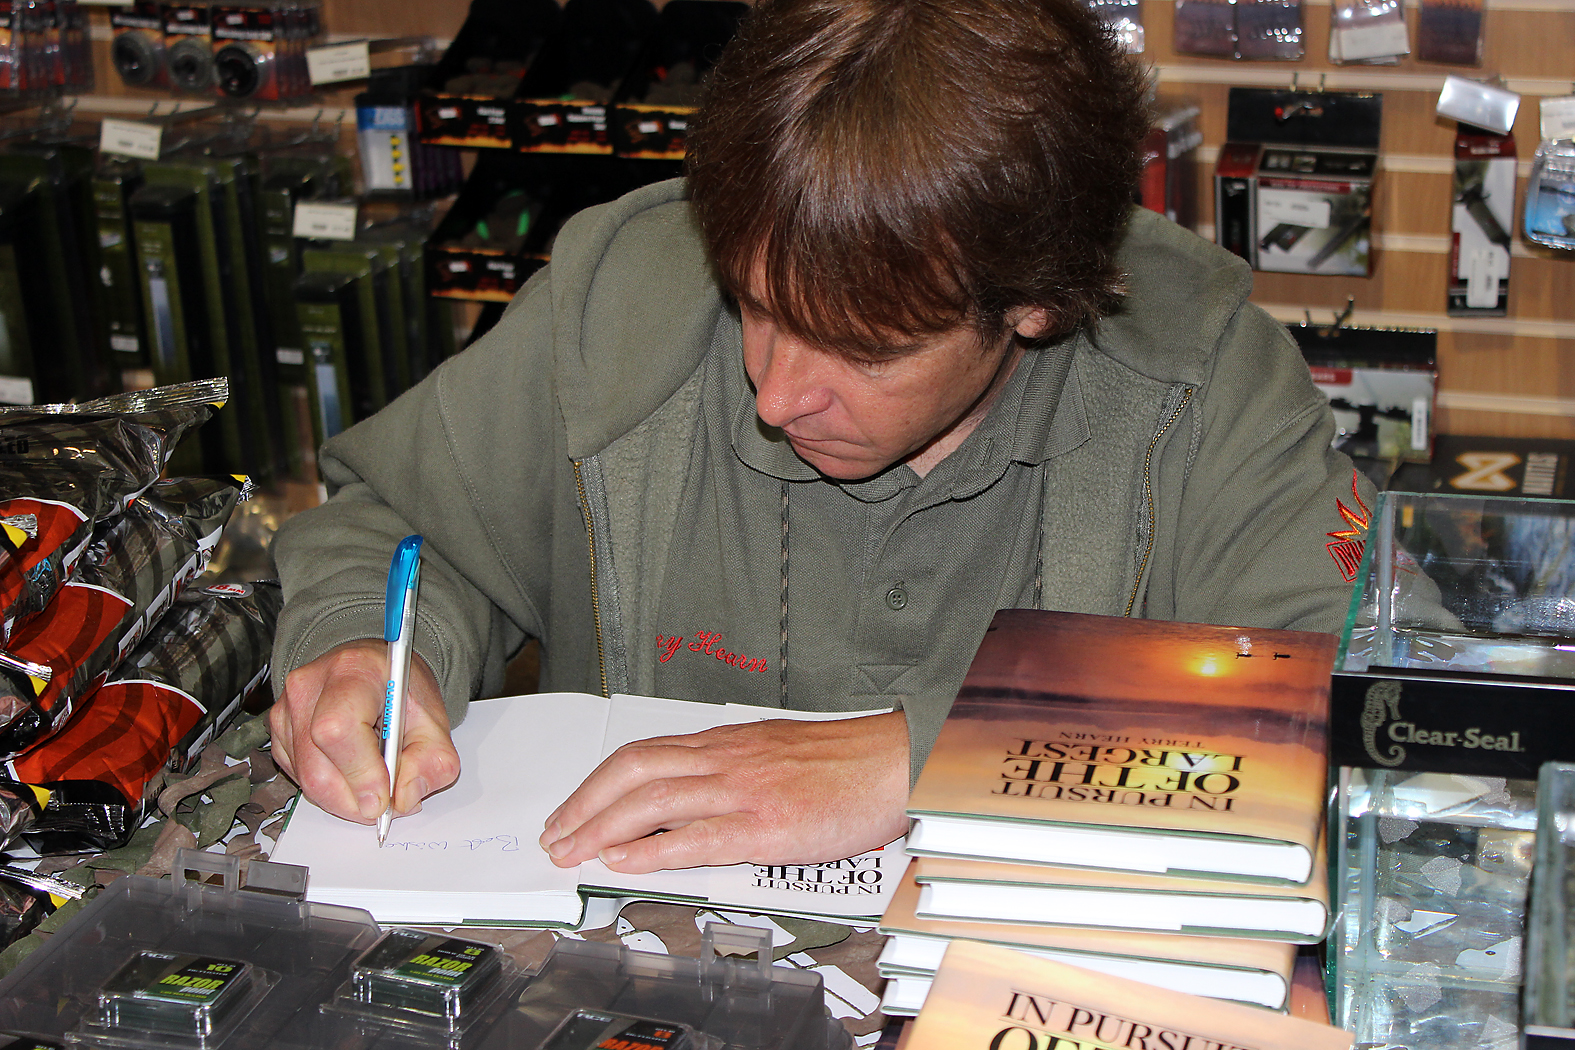 With book signing, rig explanations, Terry tried his best to answer all questions